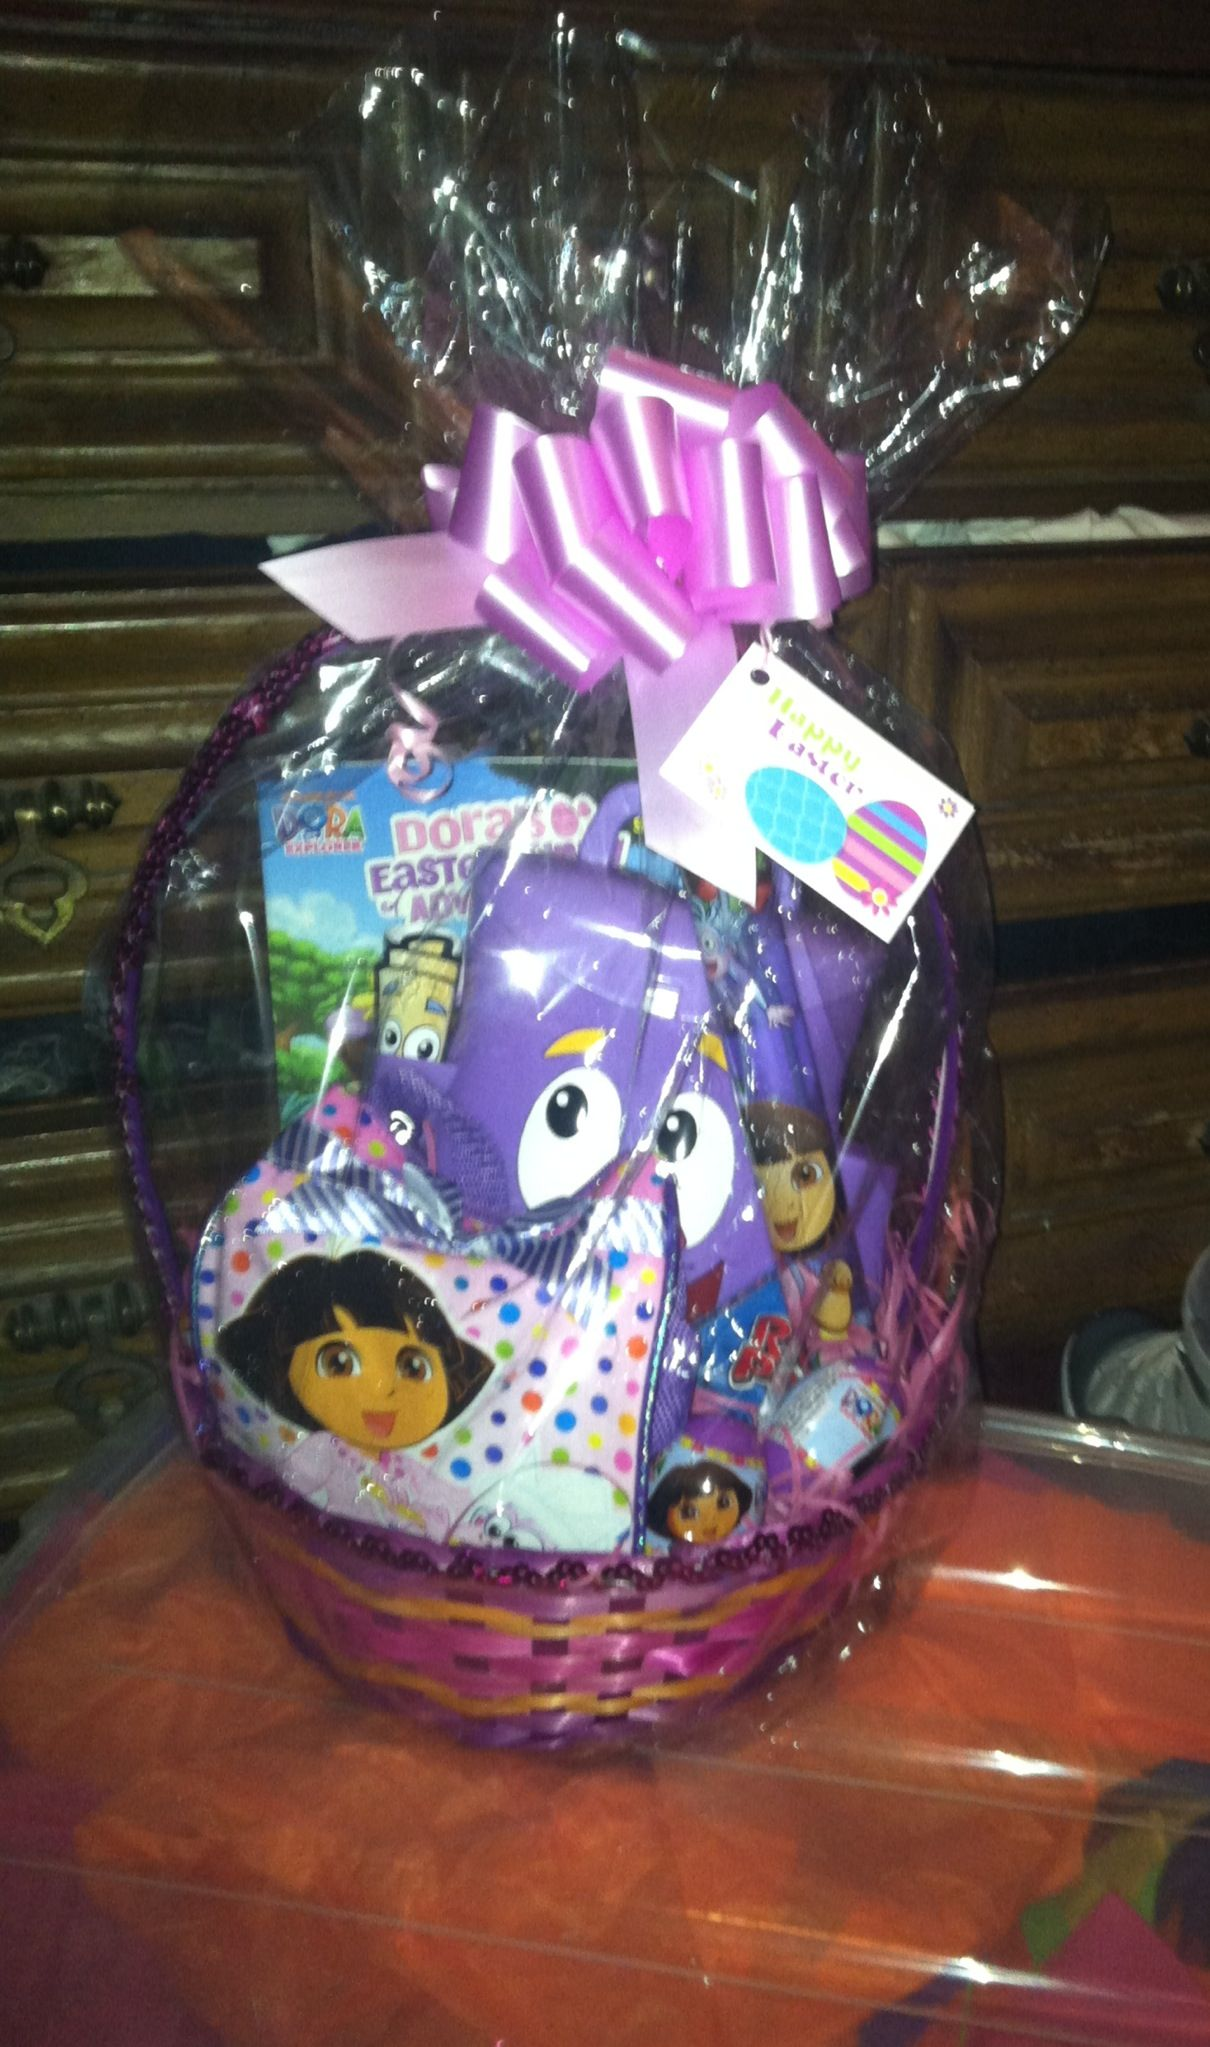 Diy dora the explorer easter basket i made for my daughter diy dora the explorer easter basket i made for my daughter negle Choice Image